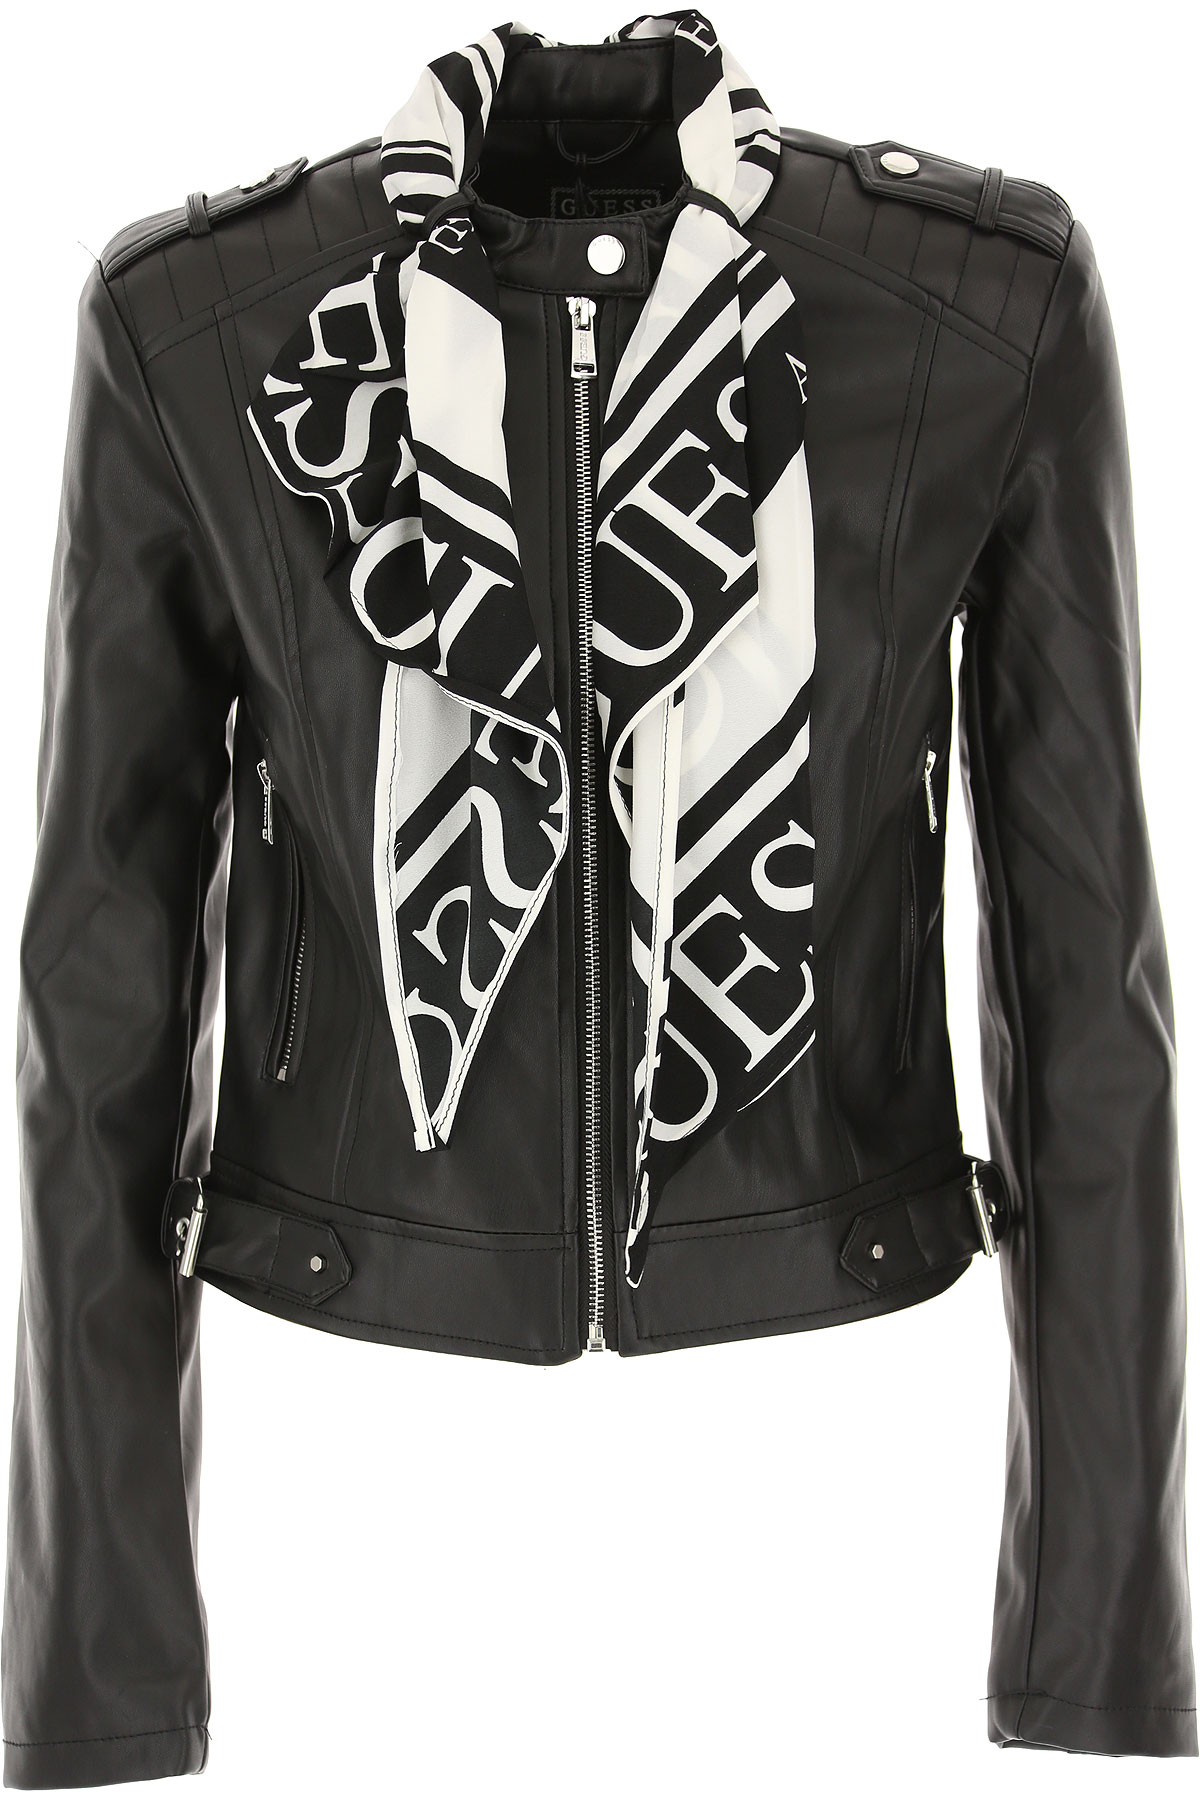 Guess Jacket for Women On Sale, Black, polyurethane, 2019, 2 4 6 8